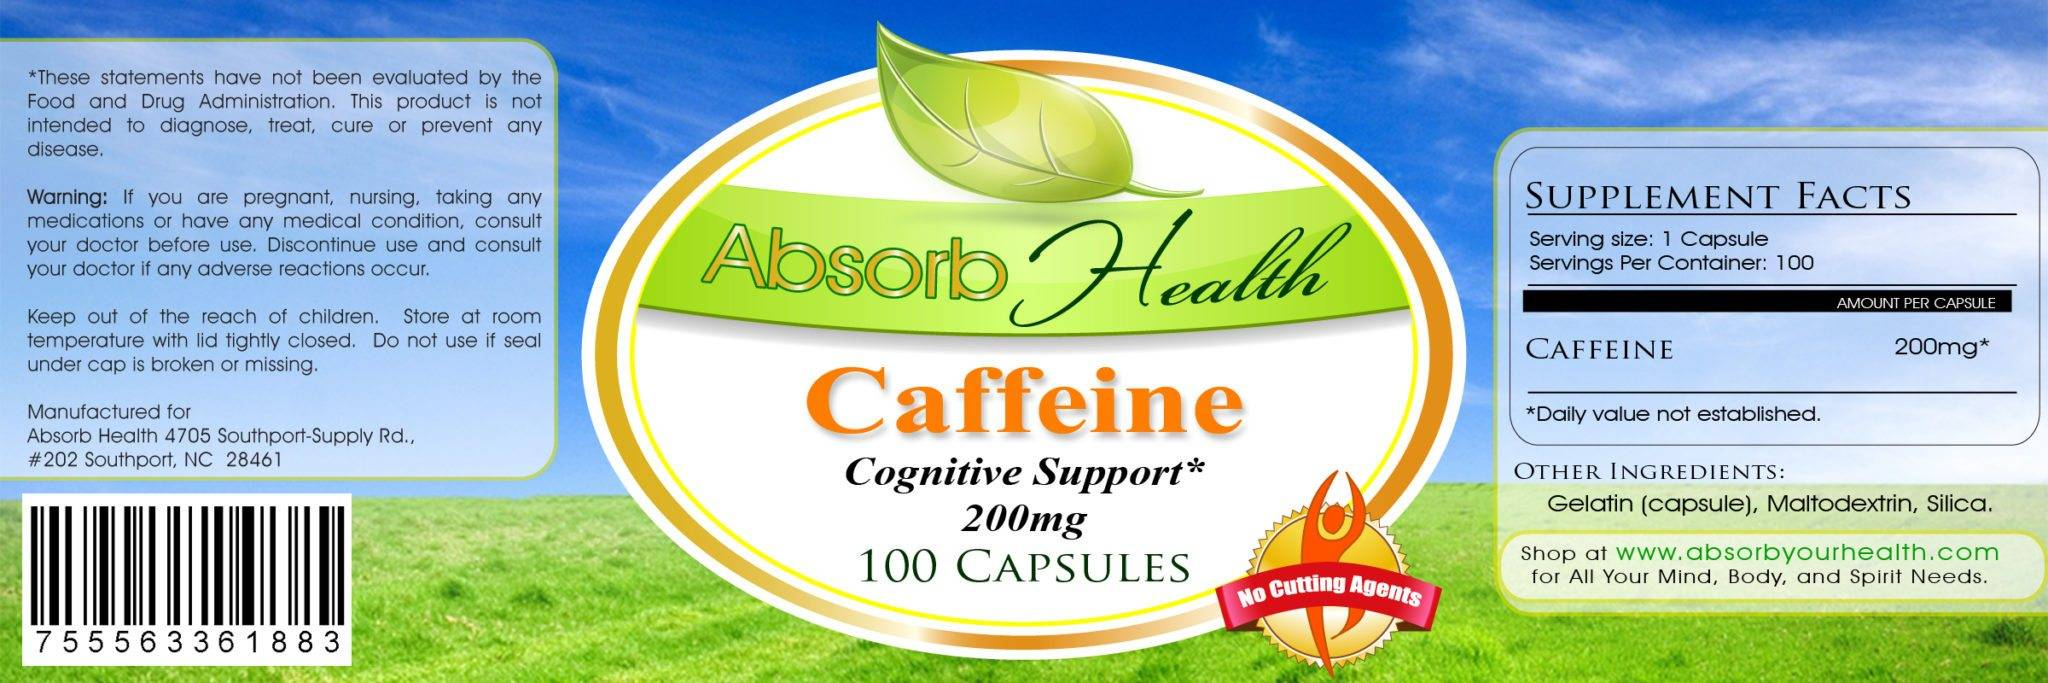 caffeine supplement label